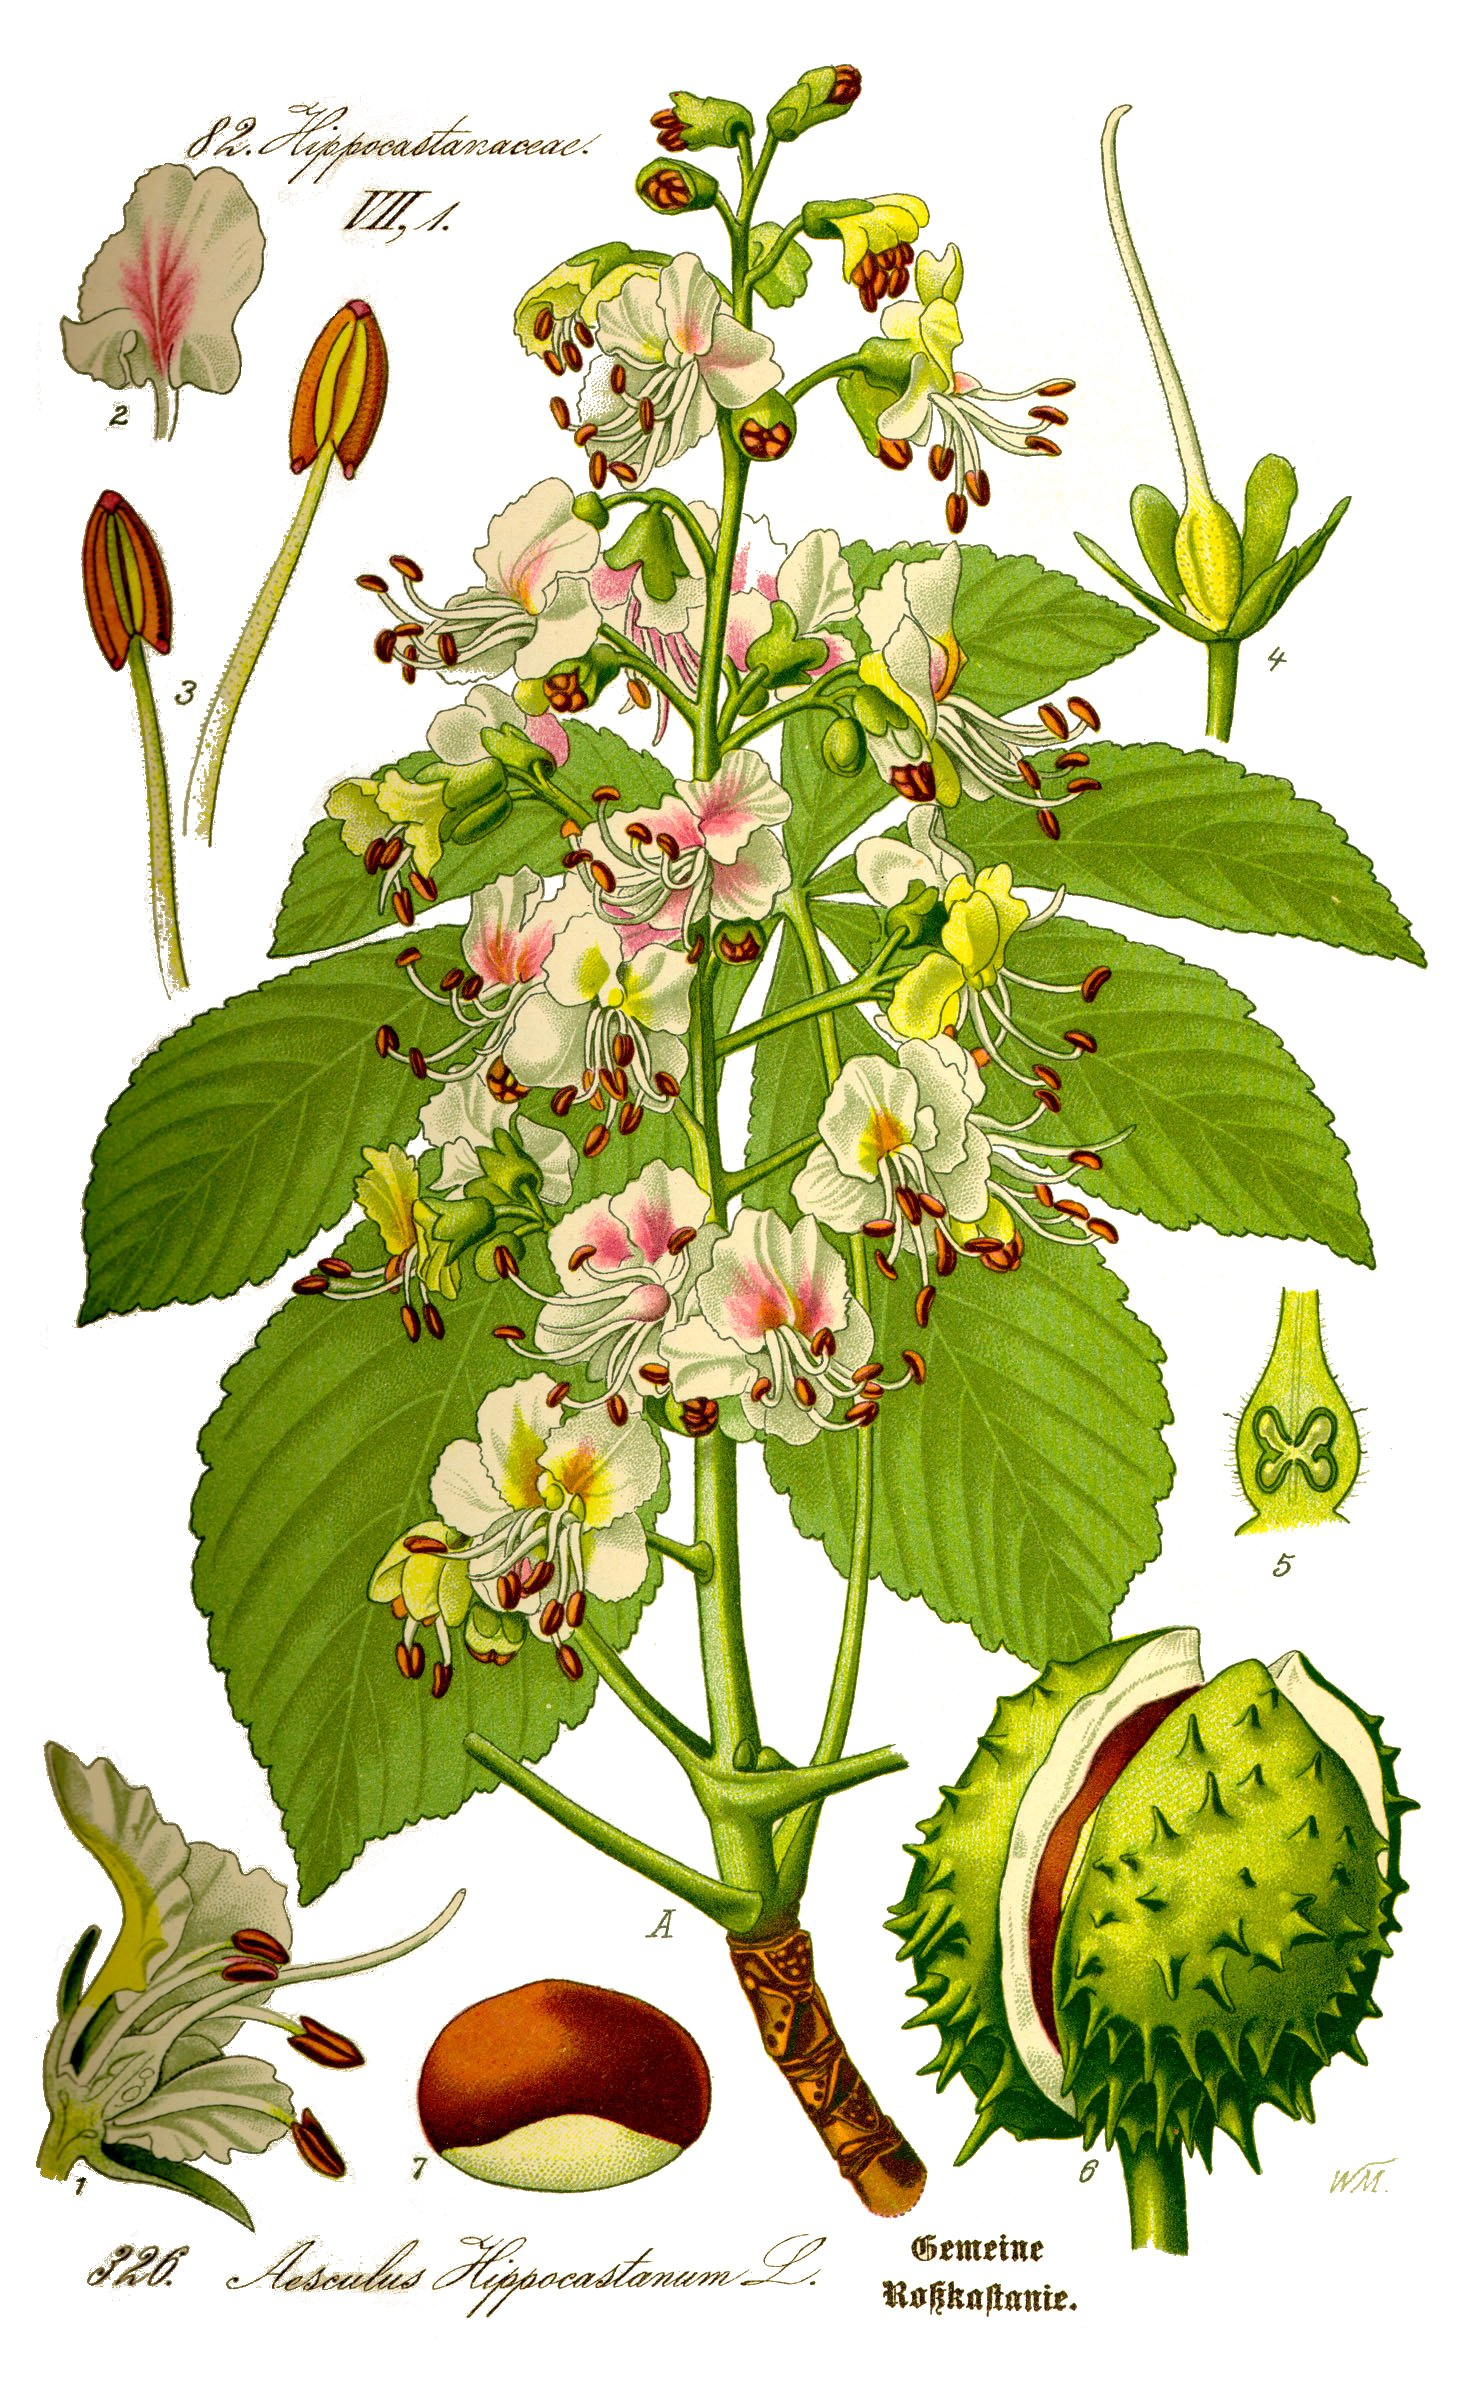 Aesculus_hippocastanum_ill_ fonte wikimedia commons